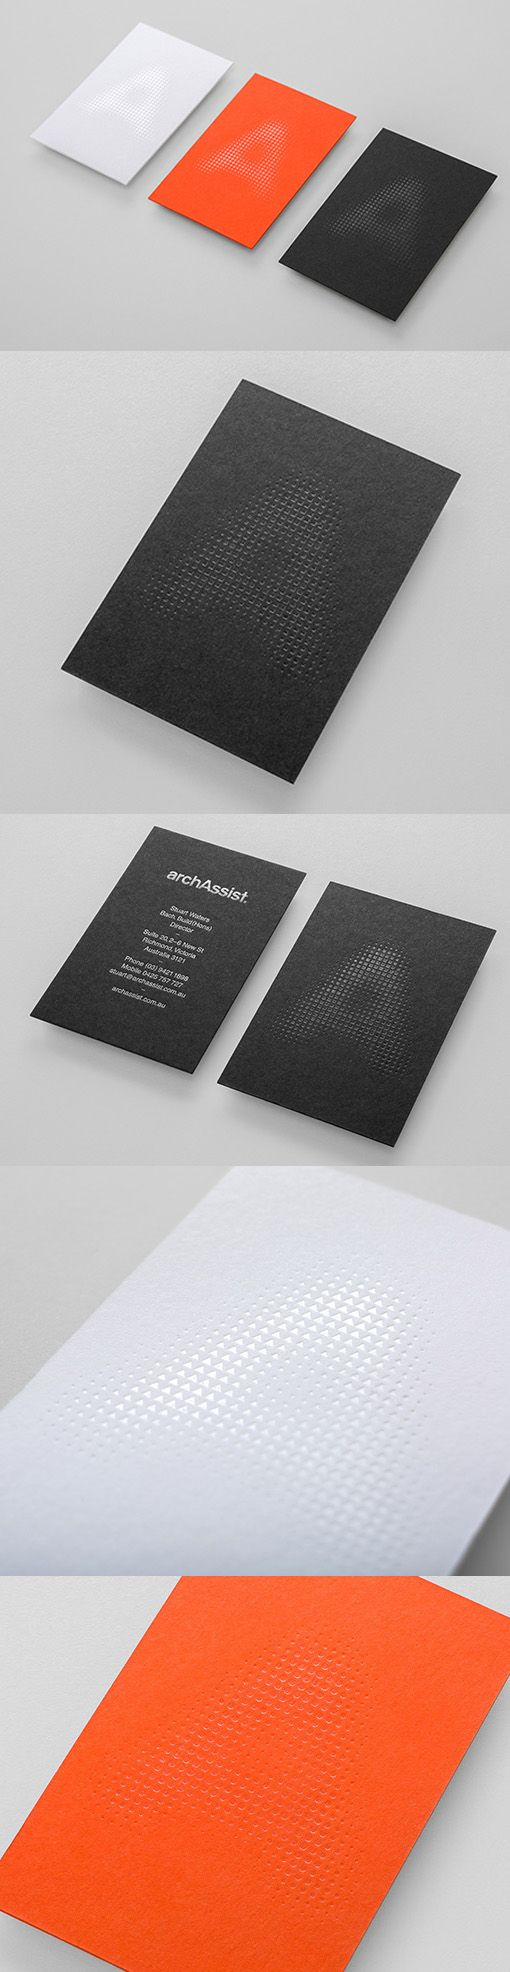 Subtle And Clever Use Of Texture On Block Colour Business Cards For An Architecture Firm